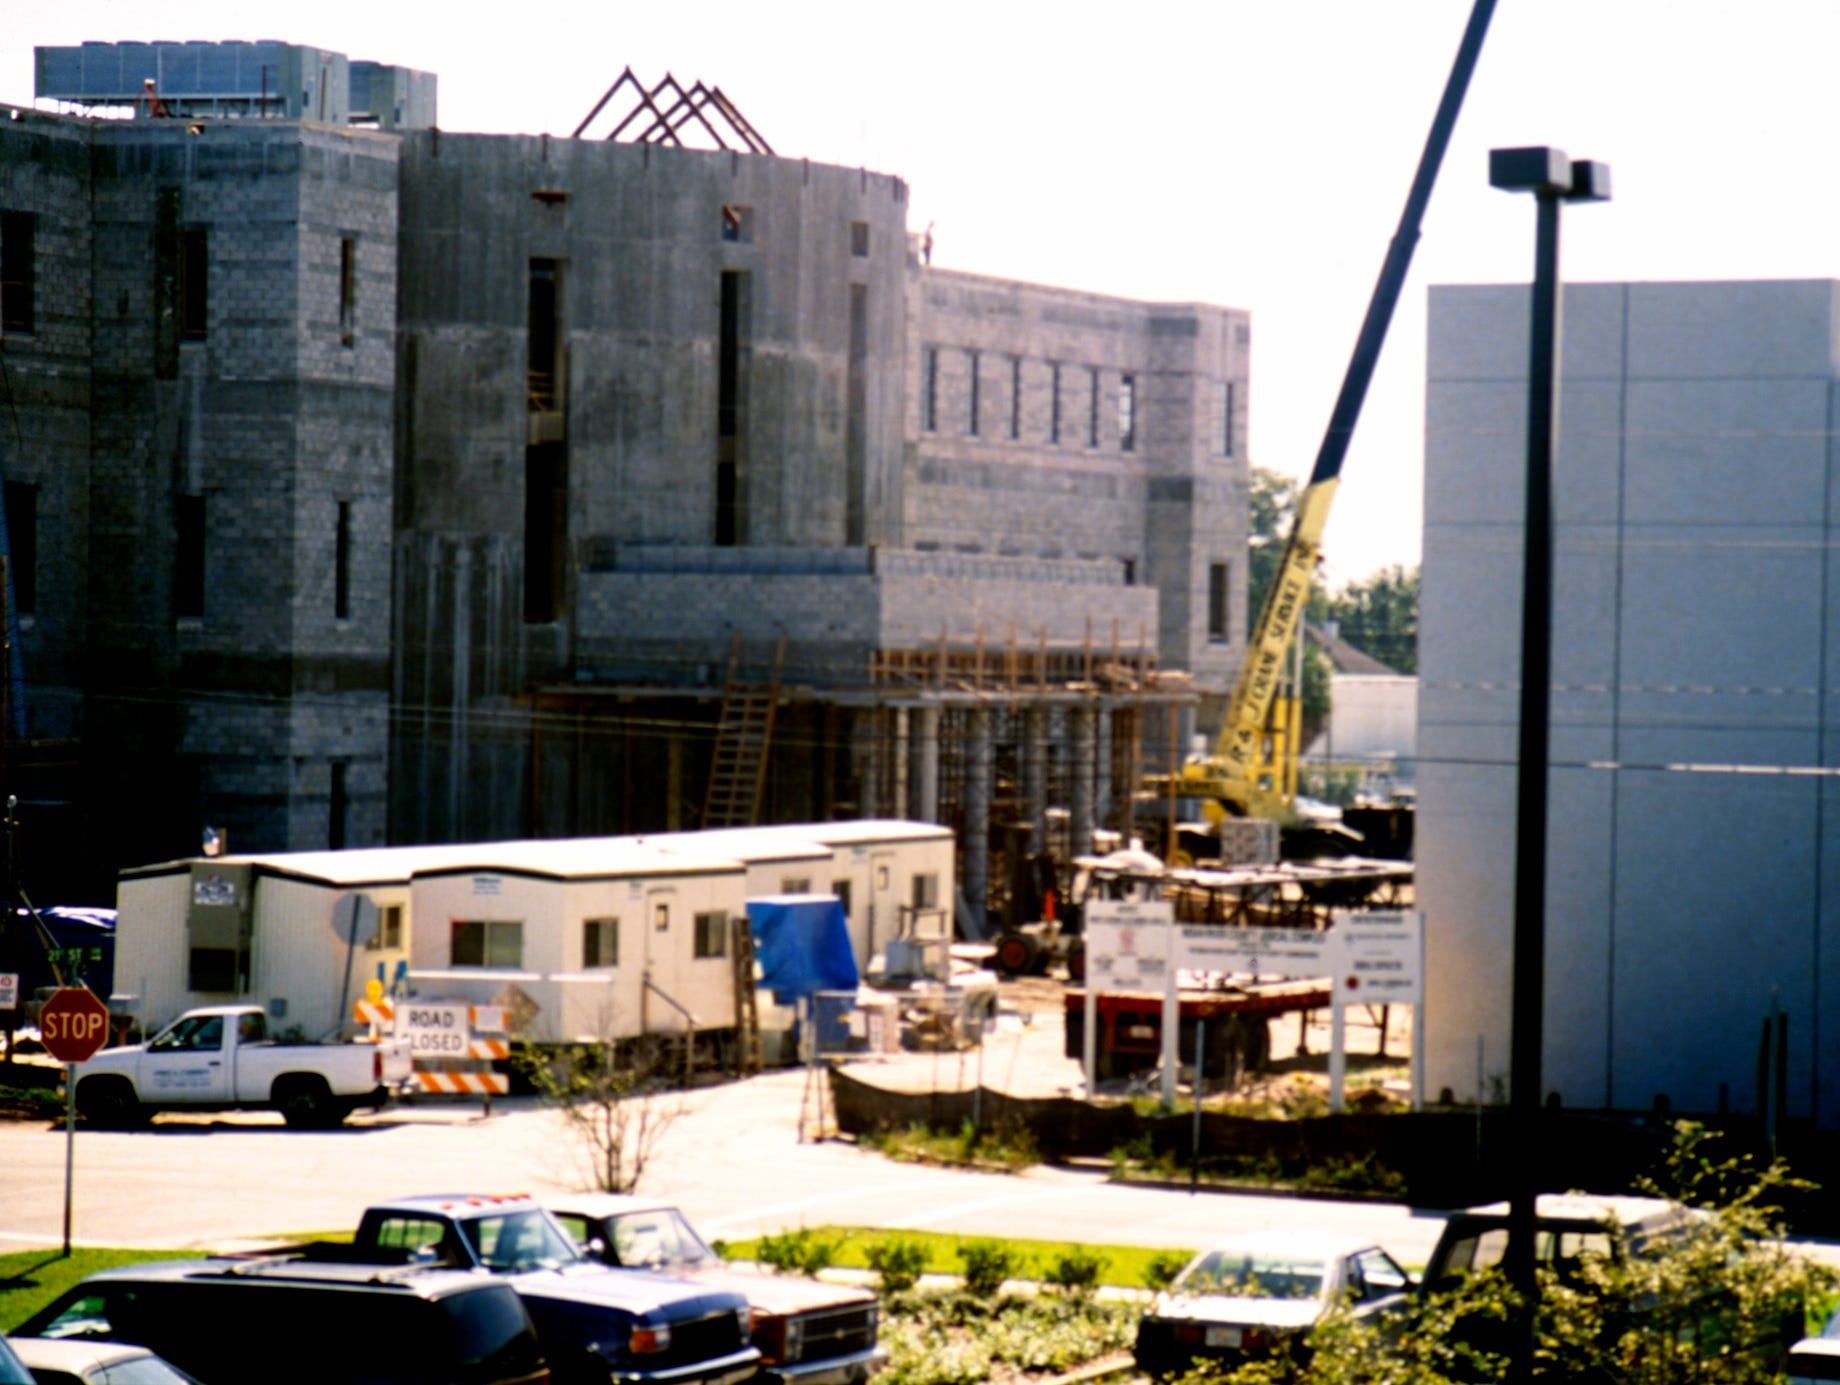 1993 - Construction began on the new $21 million courthouse and parking garage complex in downtown Vero Beach. The grand opening was scheduled for late 1994.